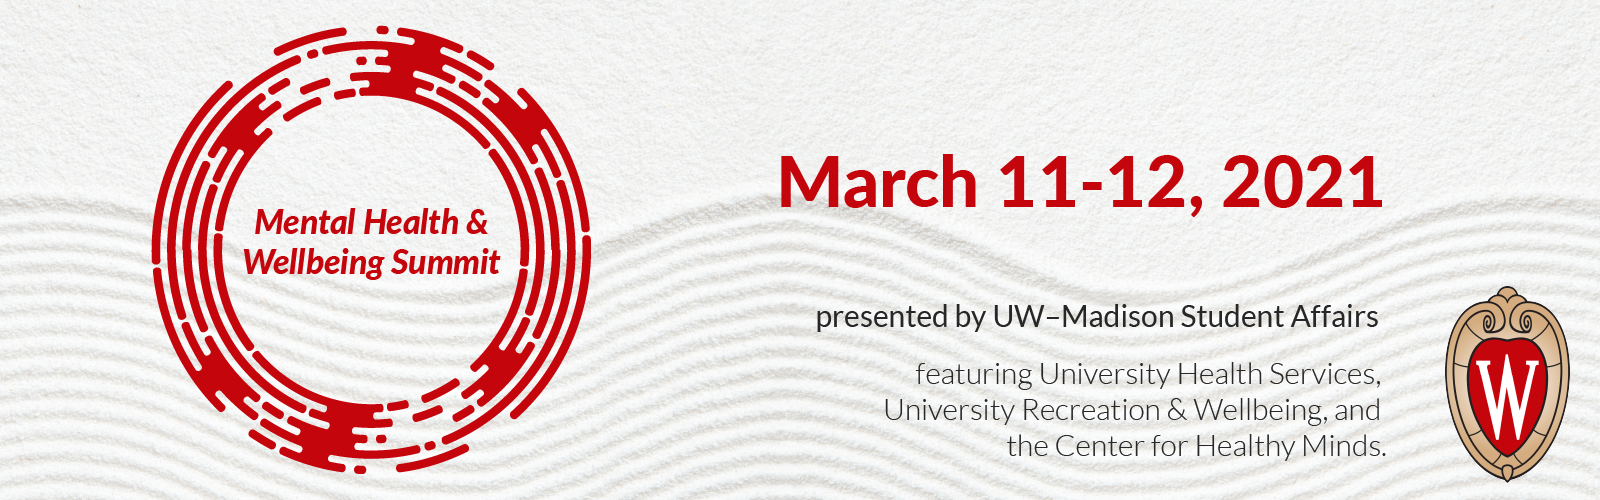 """An image with a red circle around the words """"Mental Health and Wellbeing Summit"""" with the dates March 11-12, 2021"""